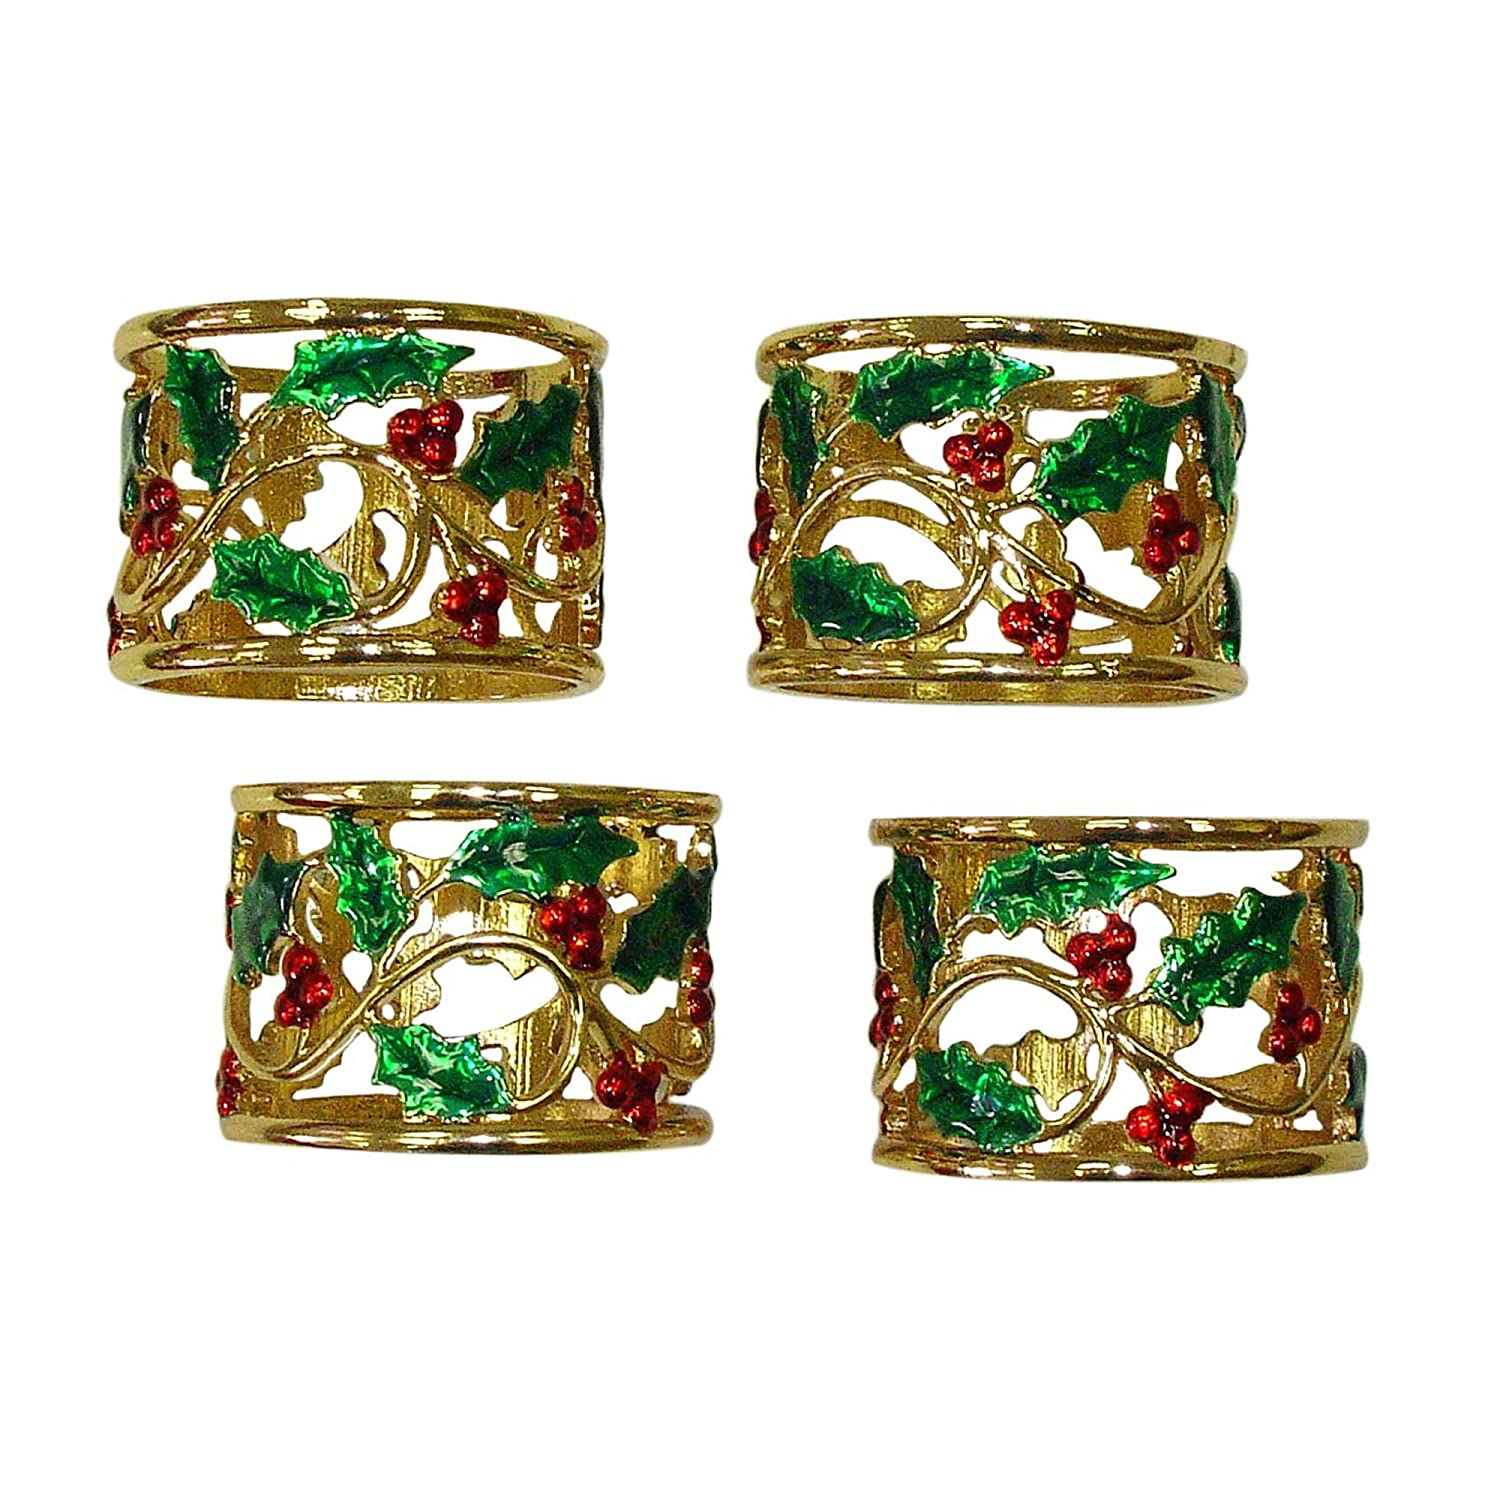 Lenox holiday napkin rings Holly and Berry, Set of 4 gold Christmas napkin rings